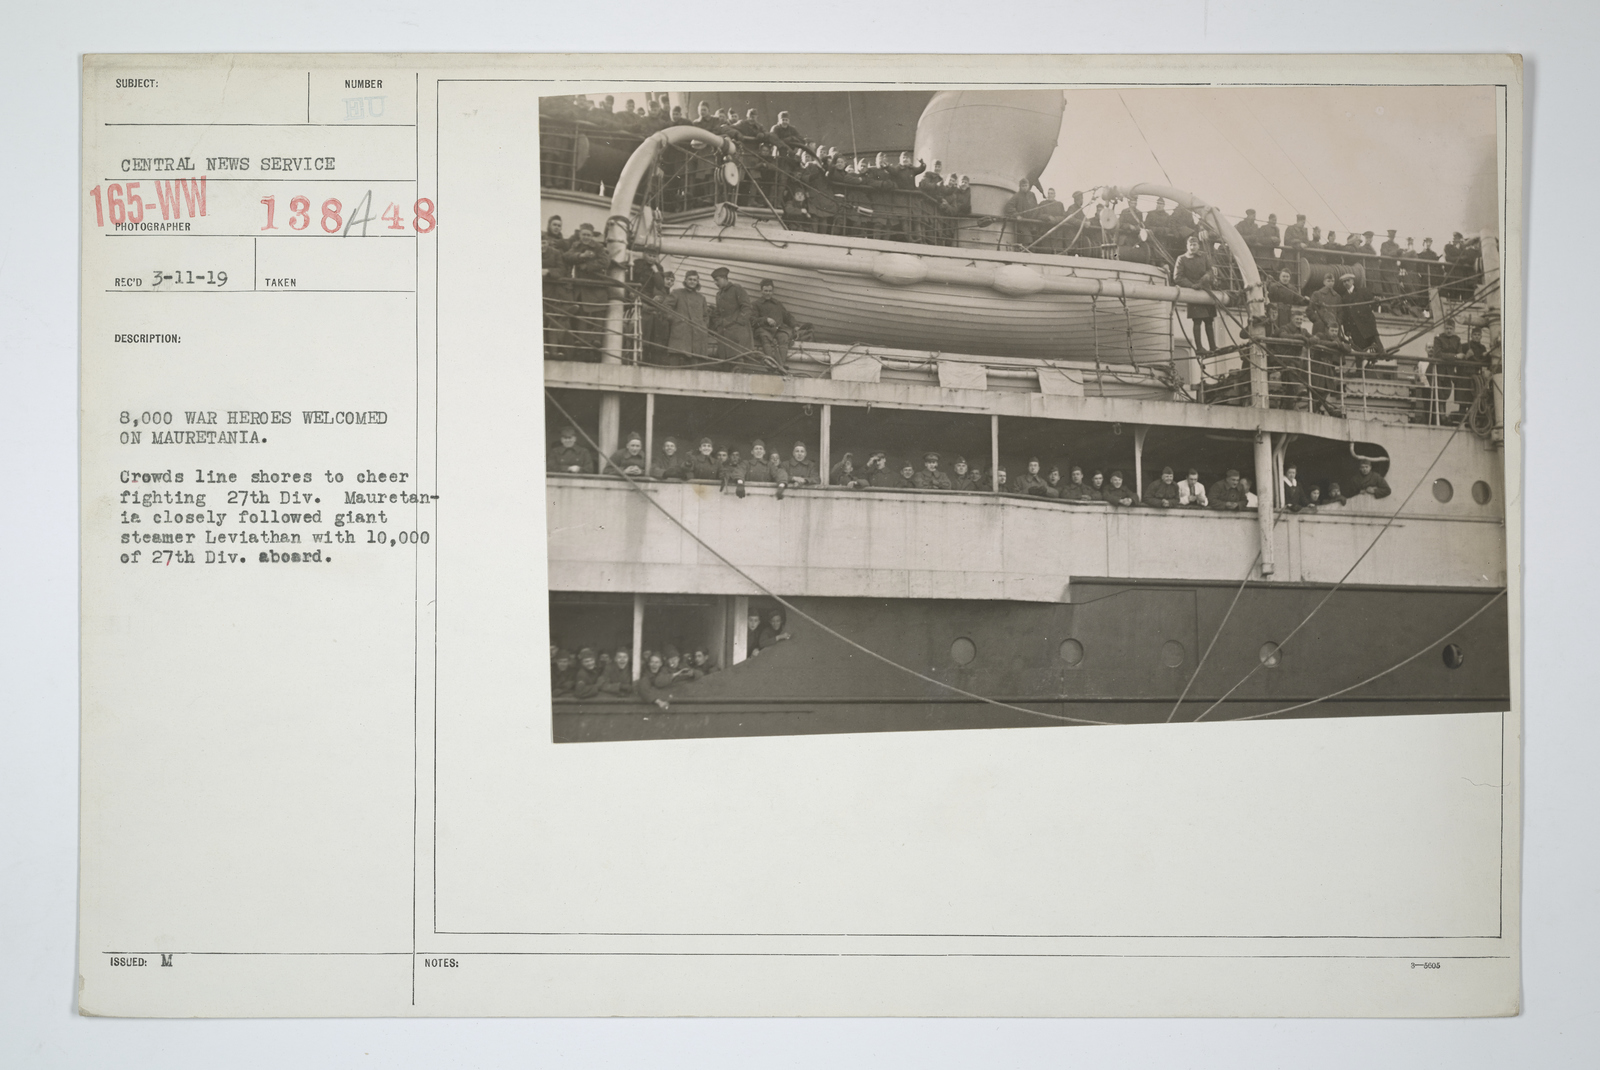 Demobilization - Miscellaneous - 8,000 war heroes welcomed on Mauretania. Crowds line shores to cheer fighting 27th Division. Mauretania closely followed giant steamer Leviathan with 10,000 of 27th Division aboard